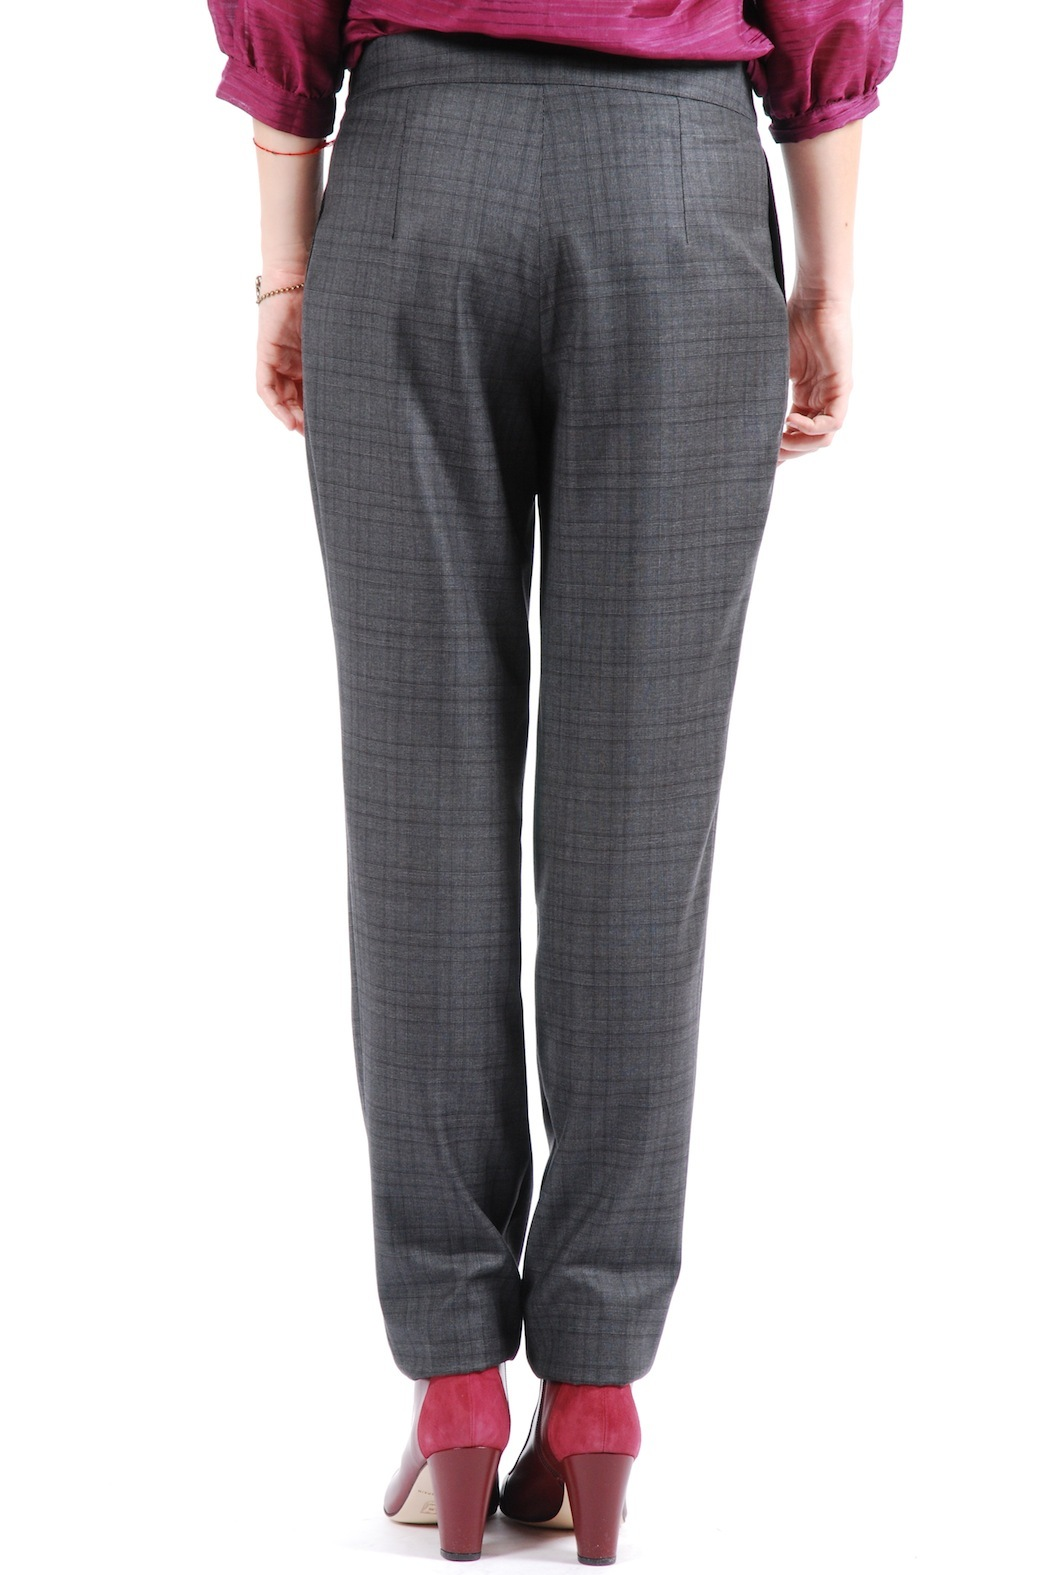 Phalaenopsis Pleated Cigarette Trousers - Back Cropped Image